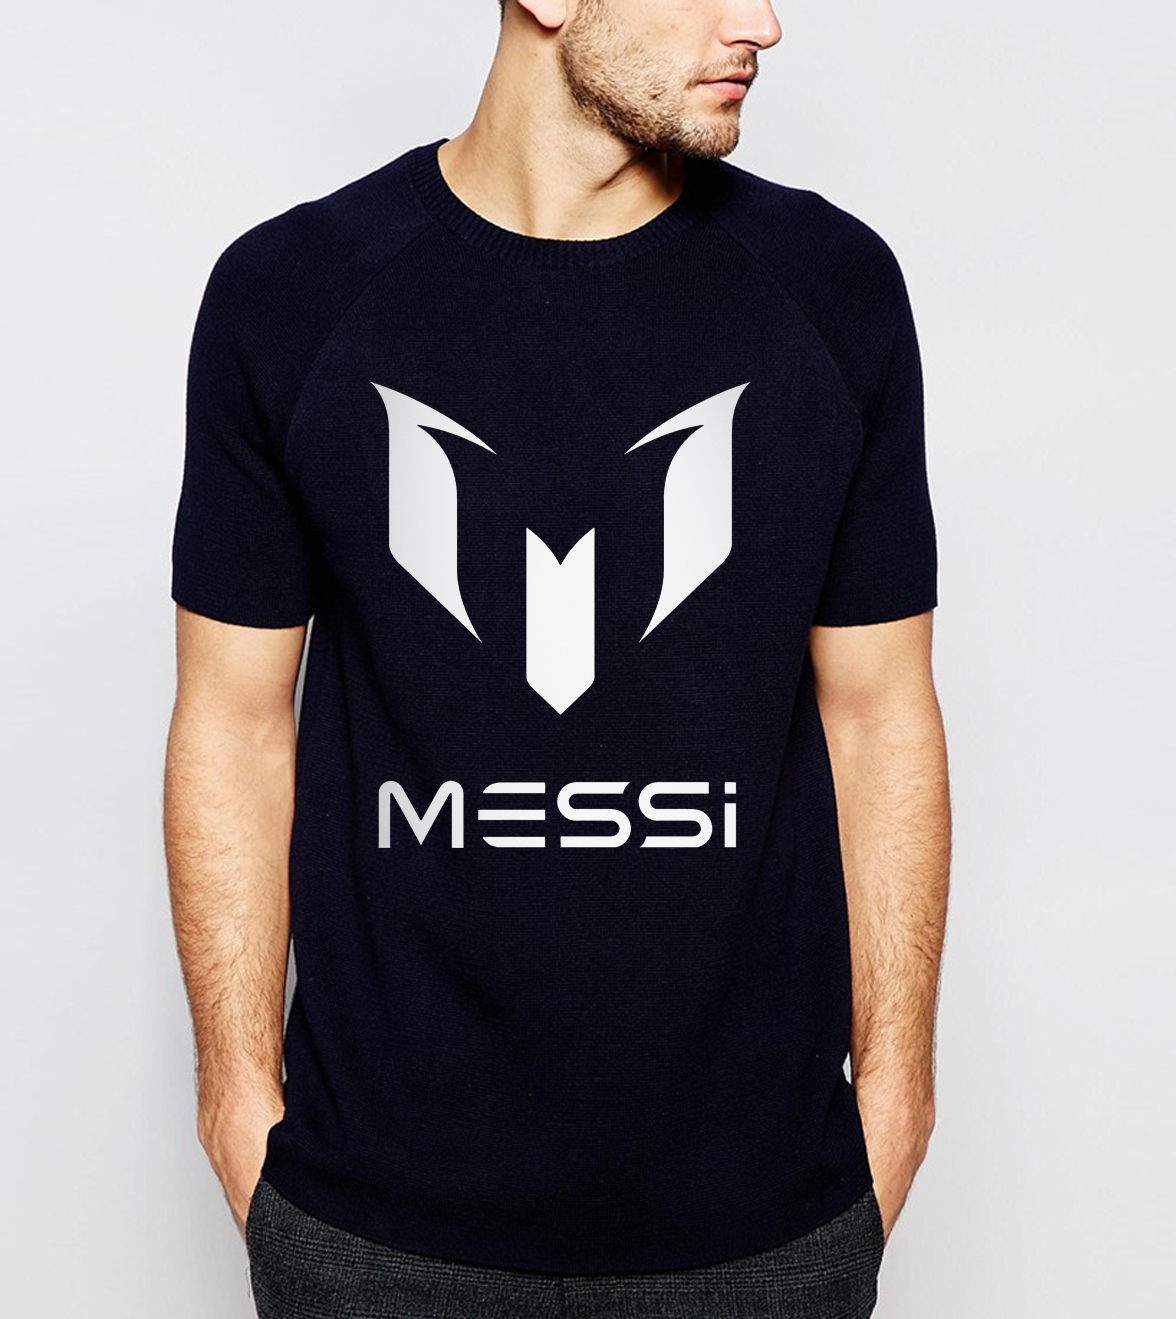 Men T-Shirt 2019 New Summer 100% Cotton Comfortable Hipster Shirts Cool Streetwear Hip Hop Tops Tees Crossfit Fitness T Shirt